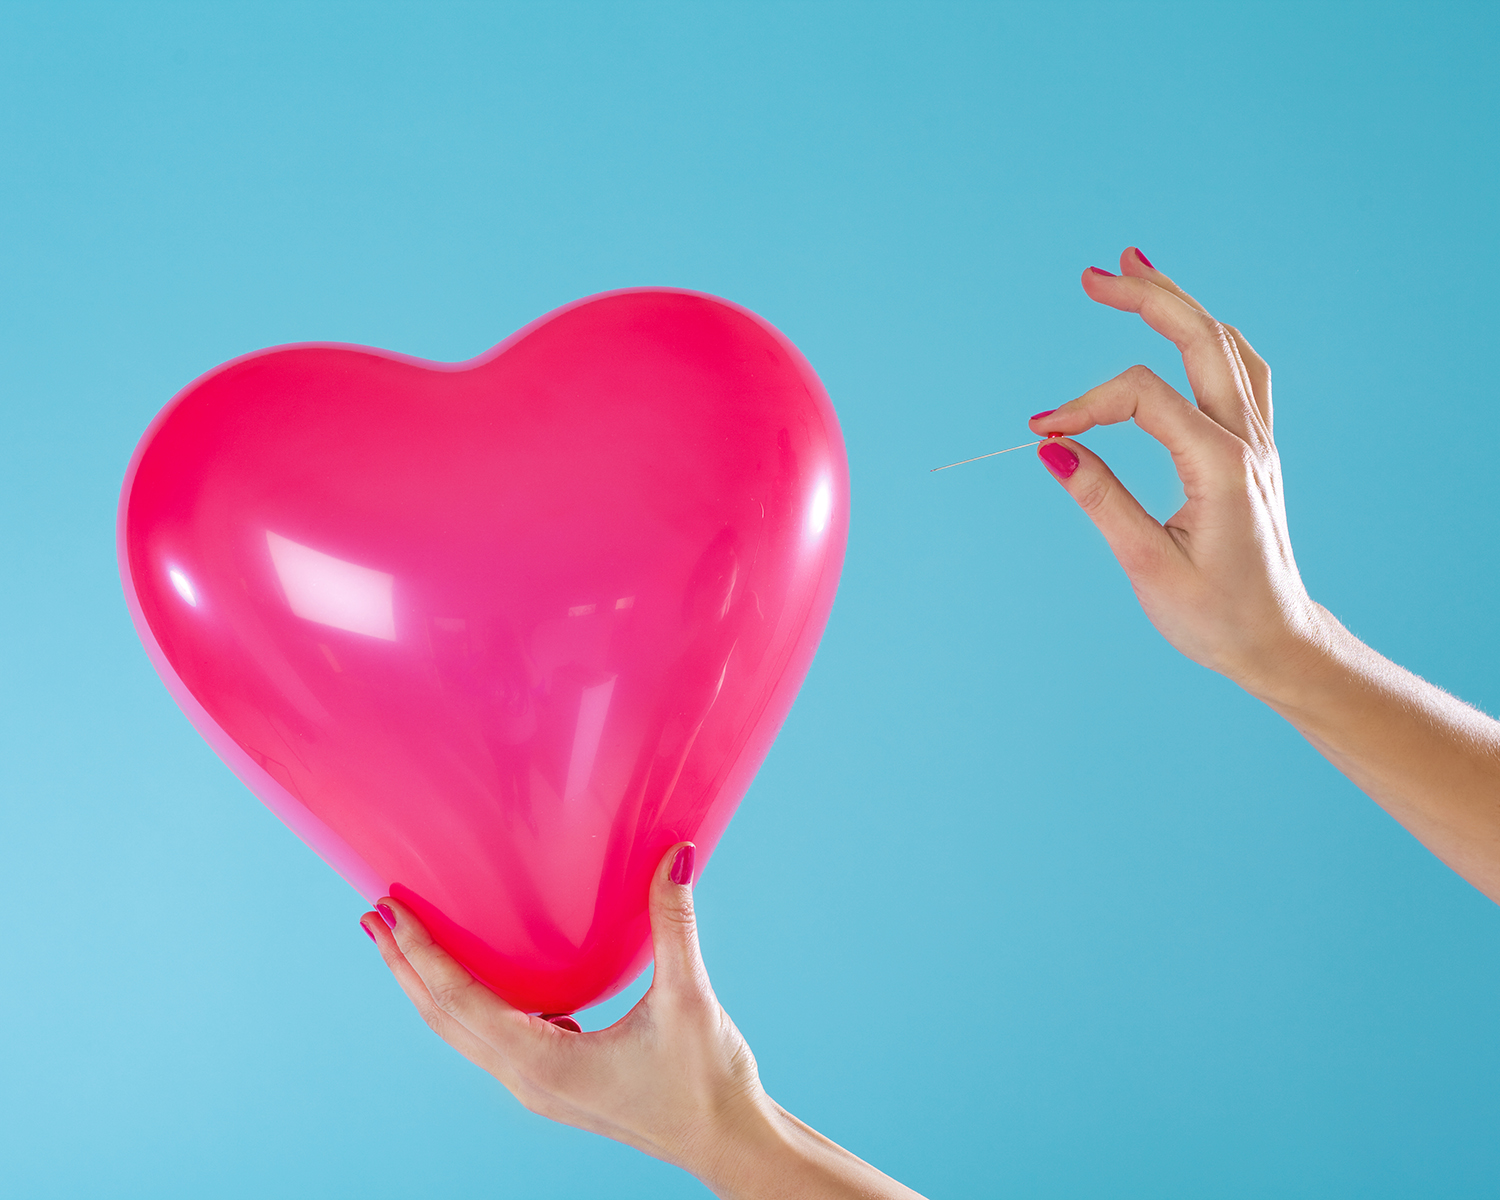 Heart and Nails Popping a Balloon